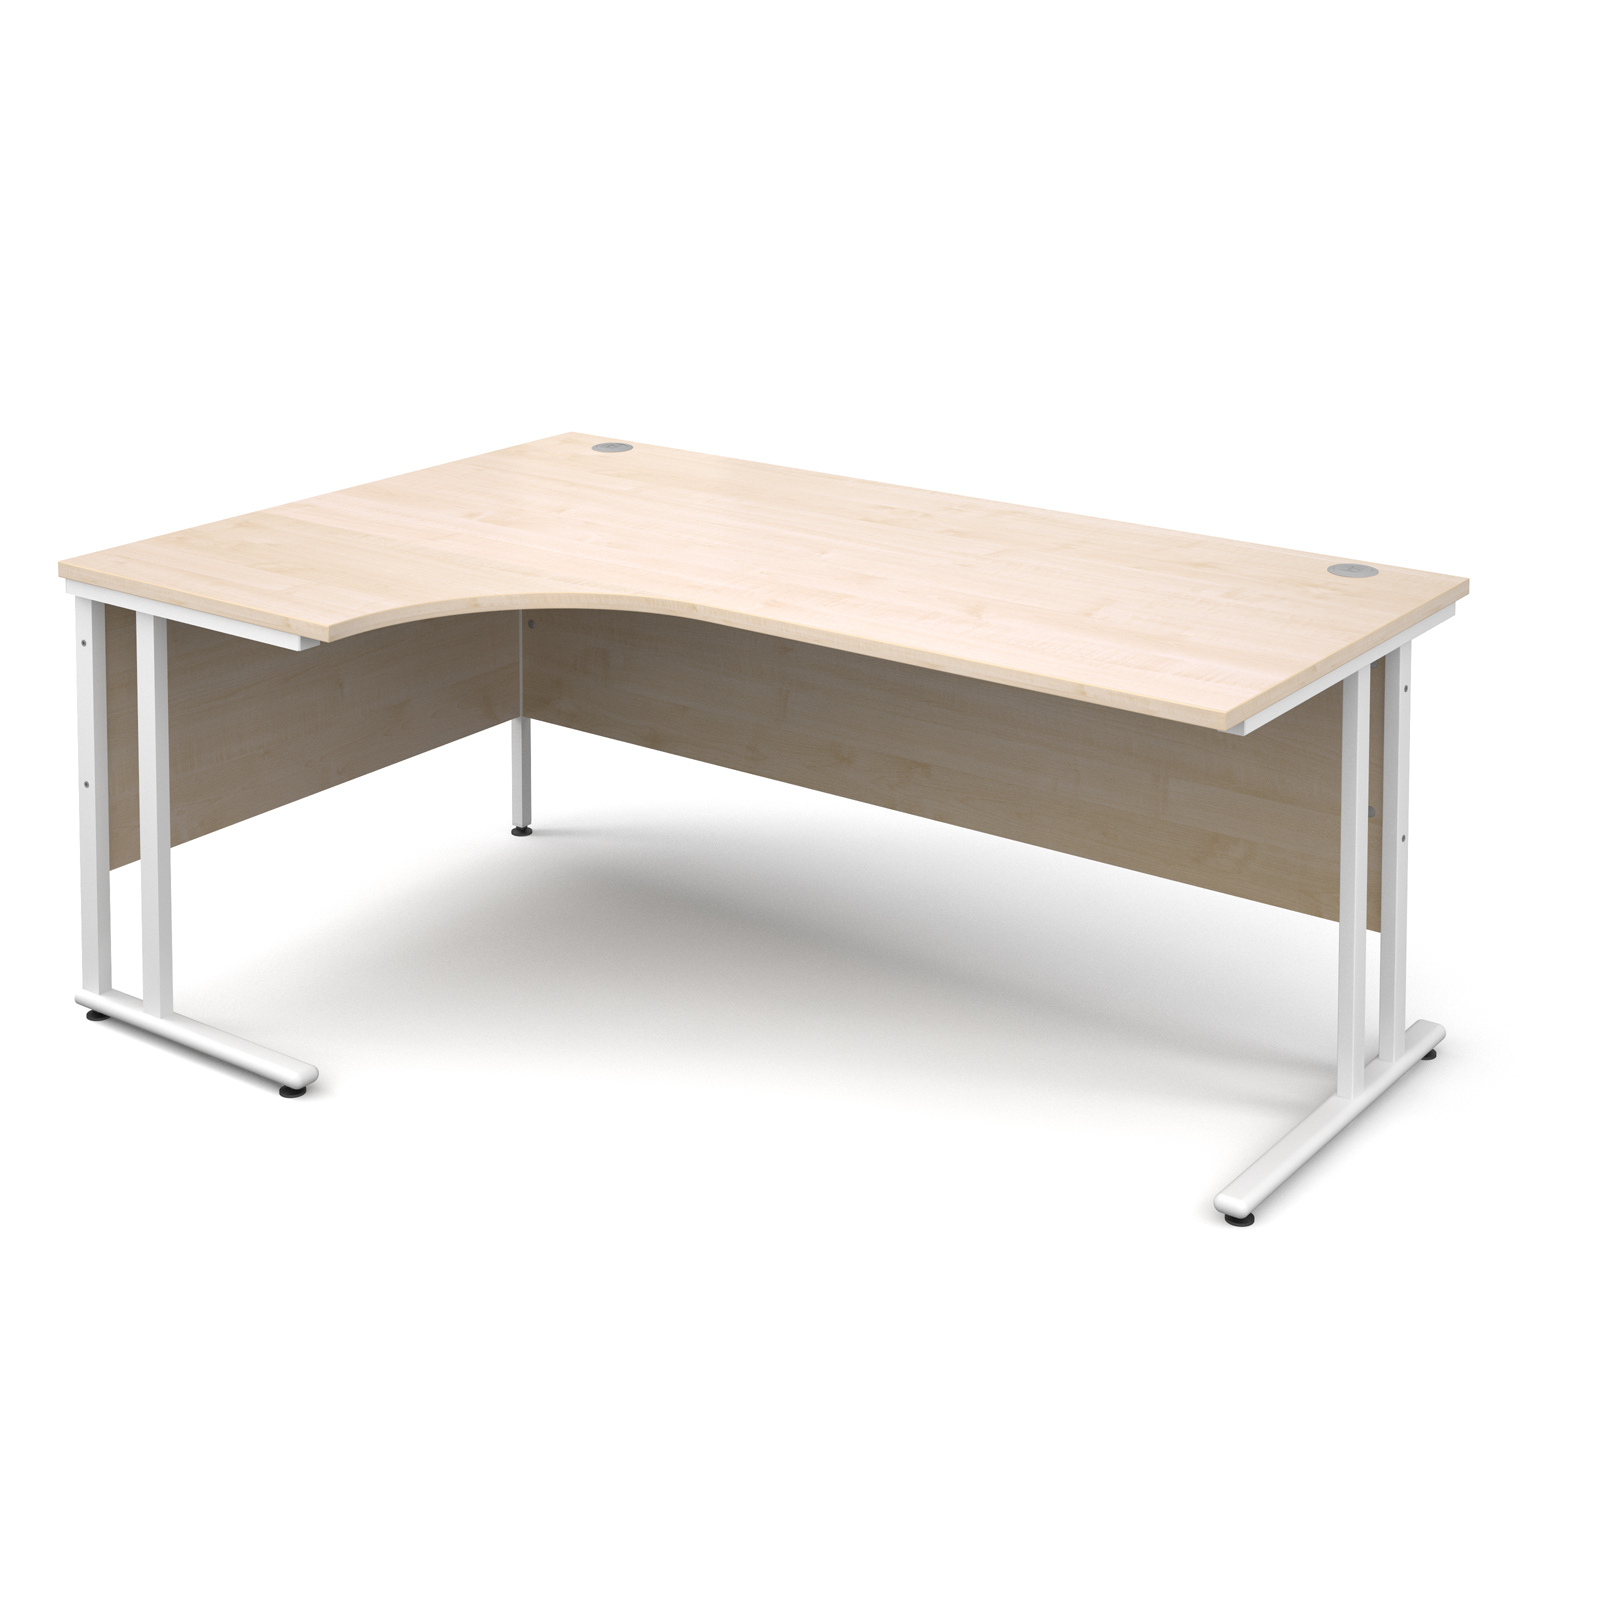 Maestro 25 Wl Left Hand Ergonomic Desk 1800mm - White Cantilever Frame, Maple Top